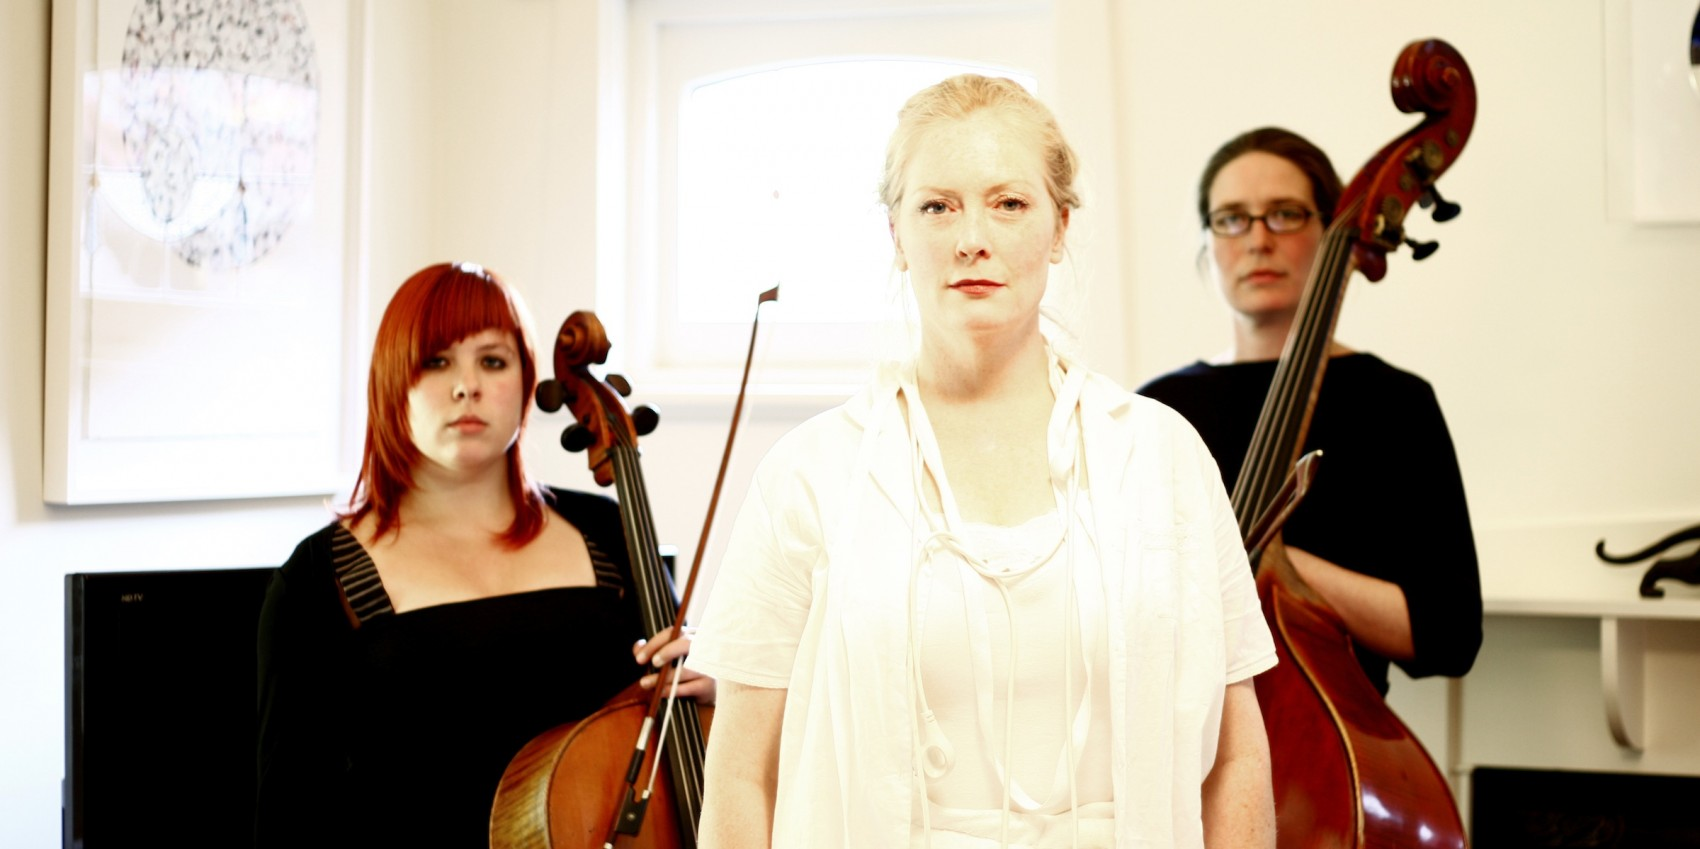 Three women stand in a white room, one wearing white, the other two wearing black, one holds a cello and one a double bass